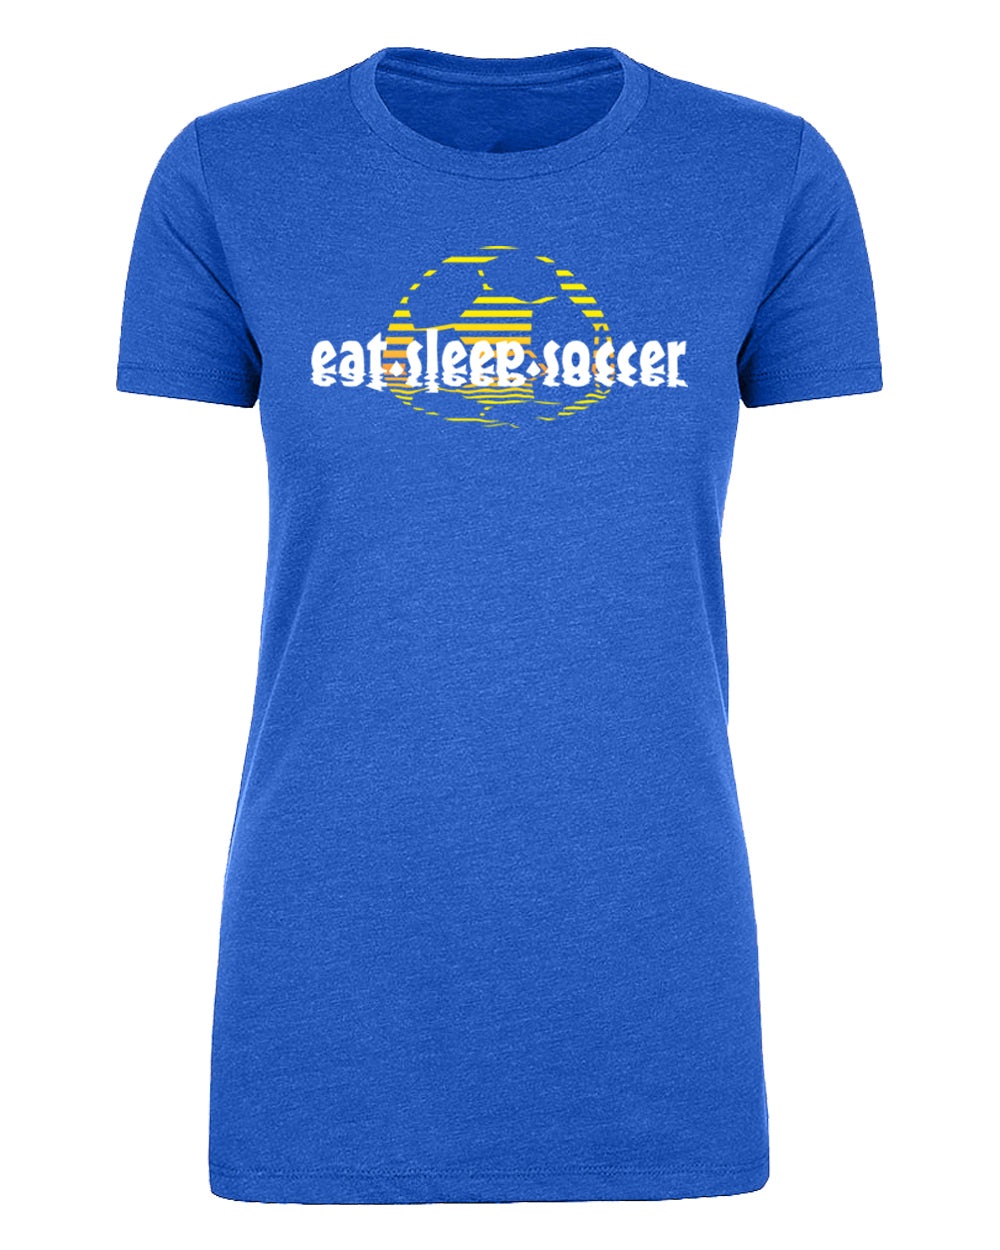 Shirt - Eat Sleep Soccer Sunset, Graphic T-shirts, Women's Soccer T Shirts